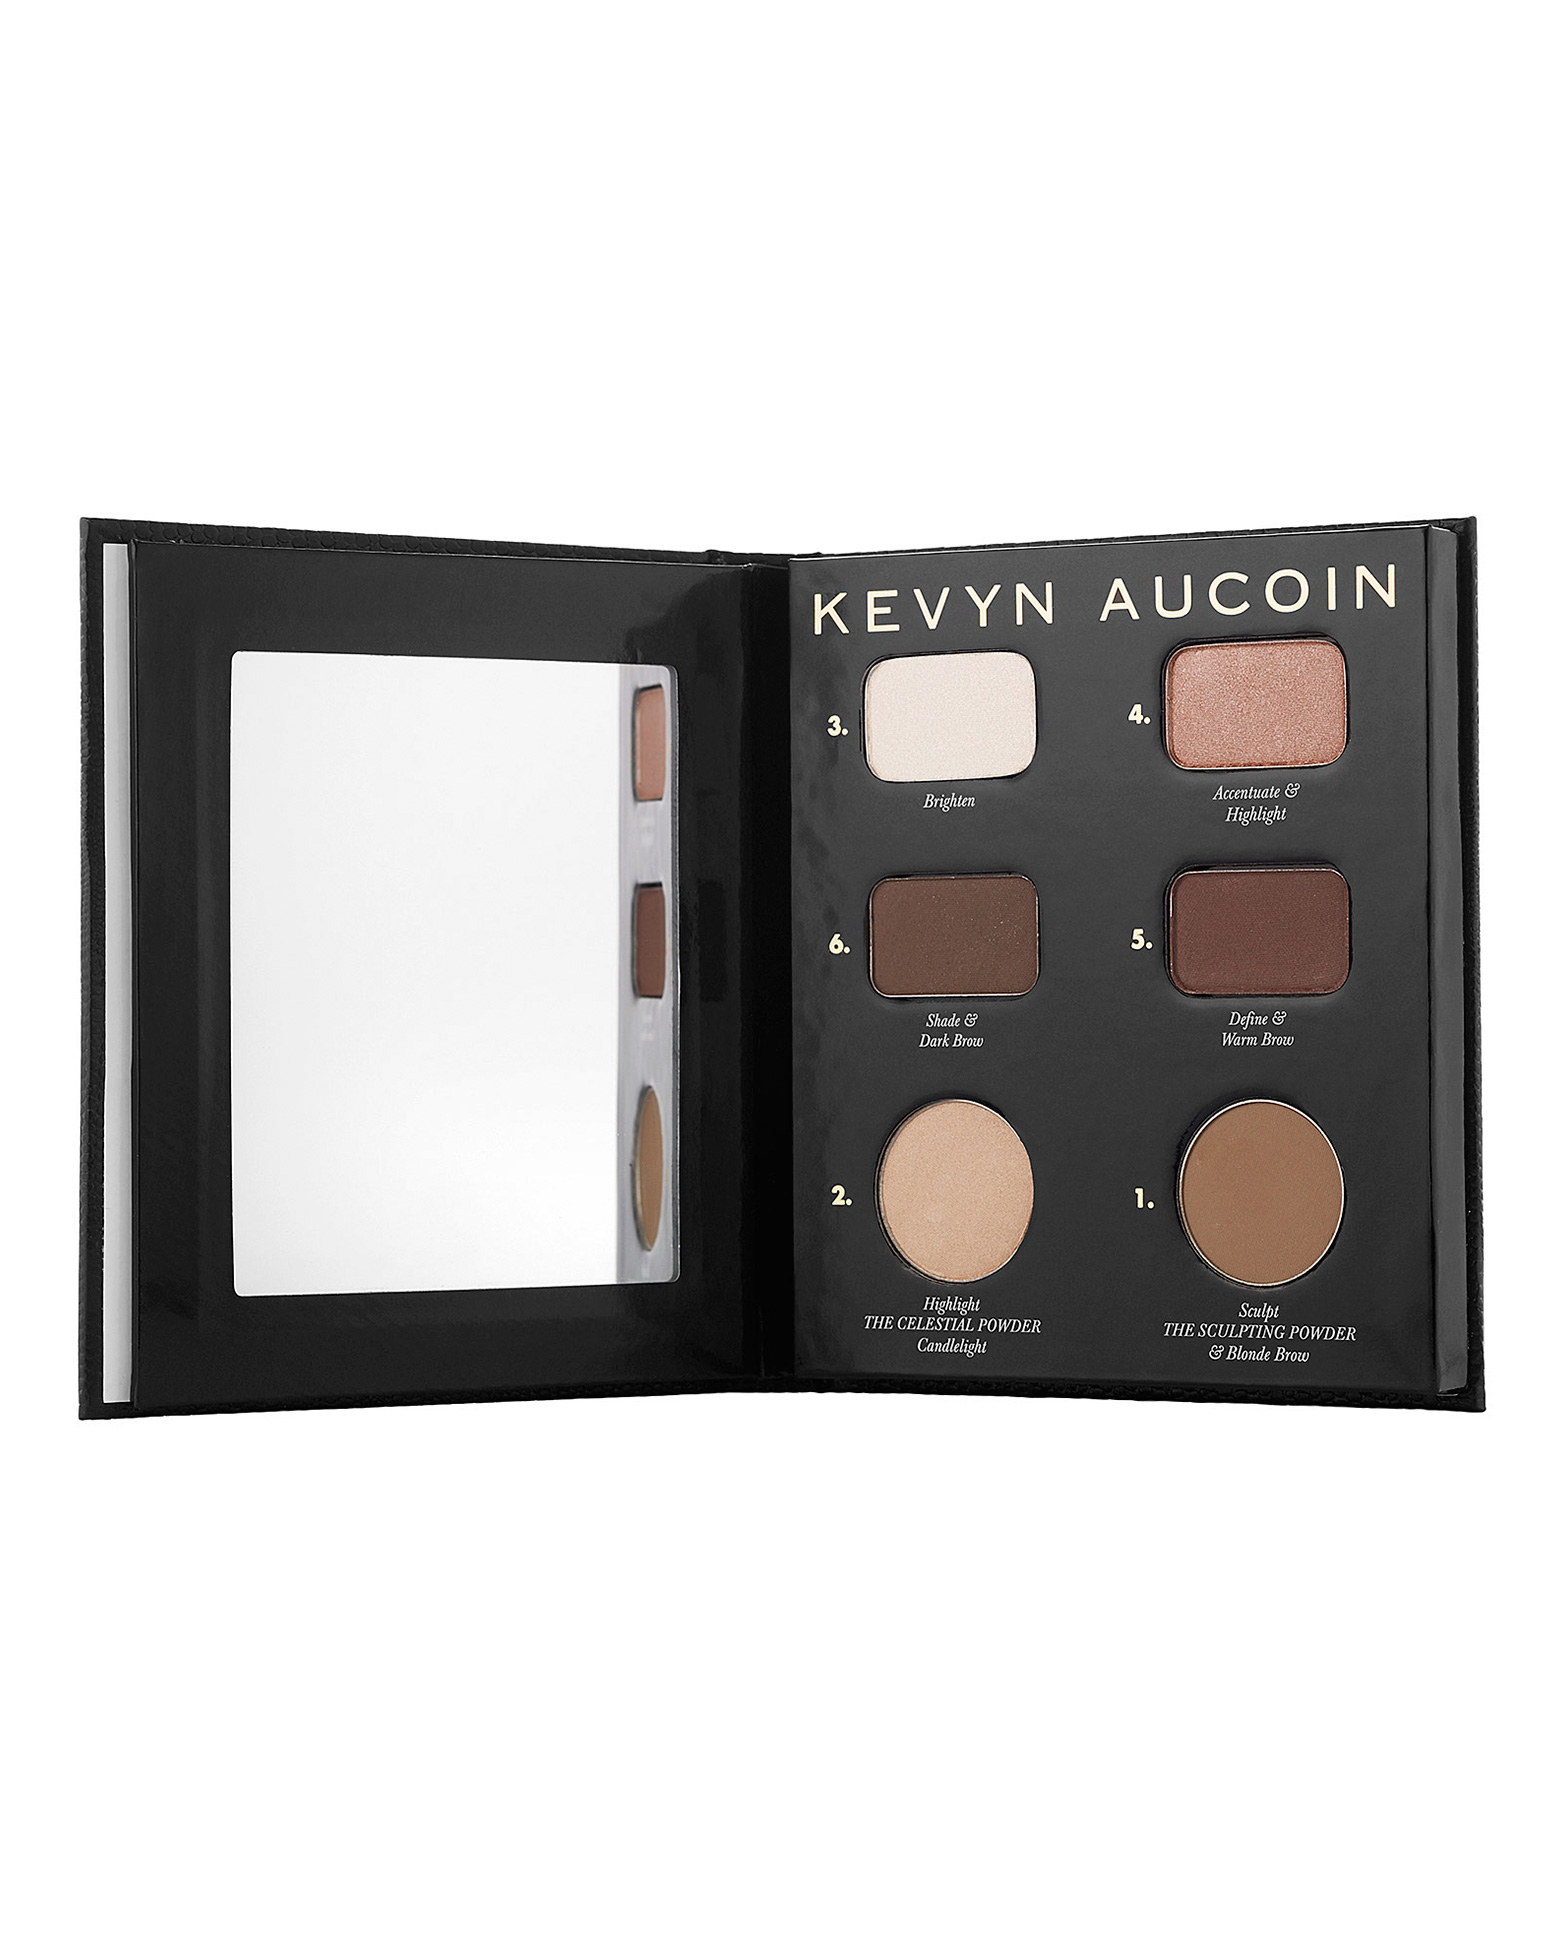 Kevyn Aucoin The Contour Book Volume 1.0